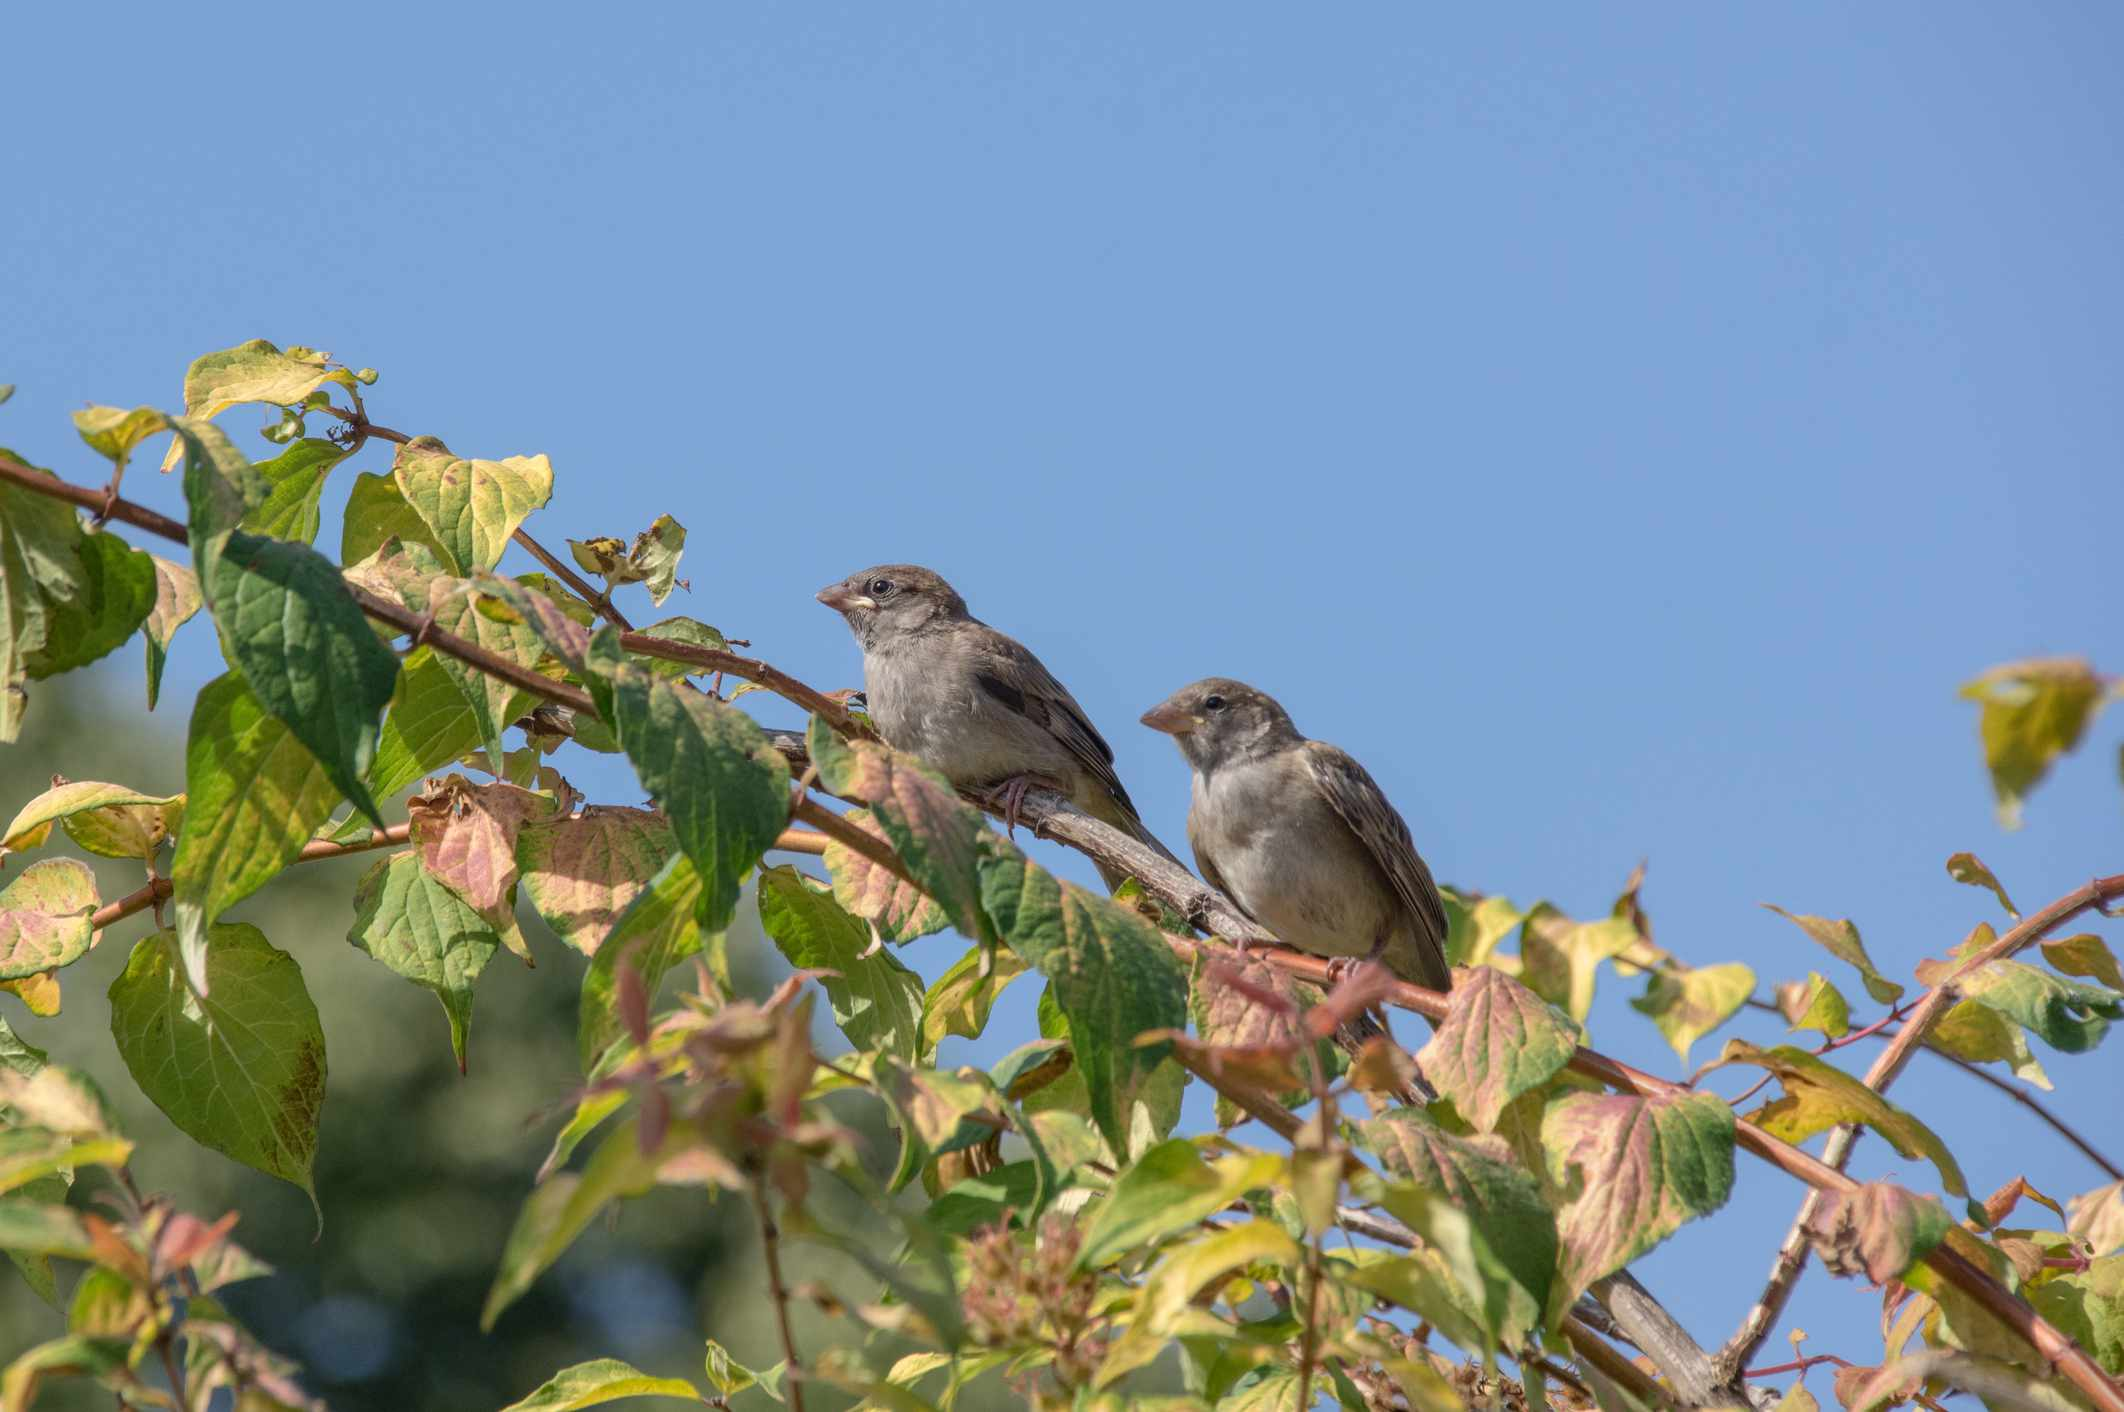 Two house sparrows on a branch with green and pink leaves with a clear blue sky behind them